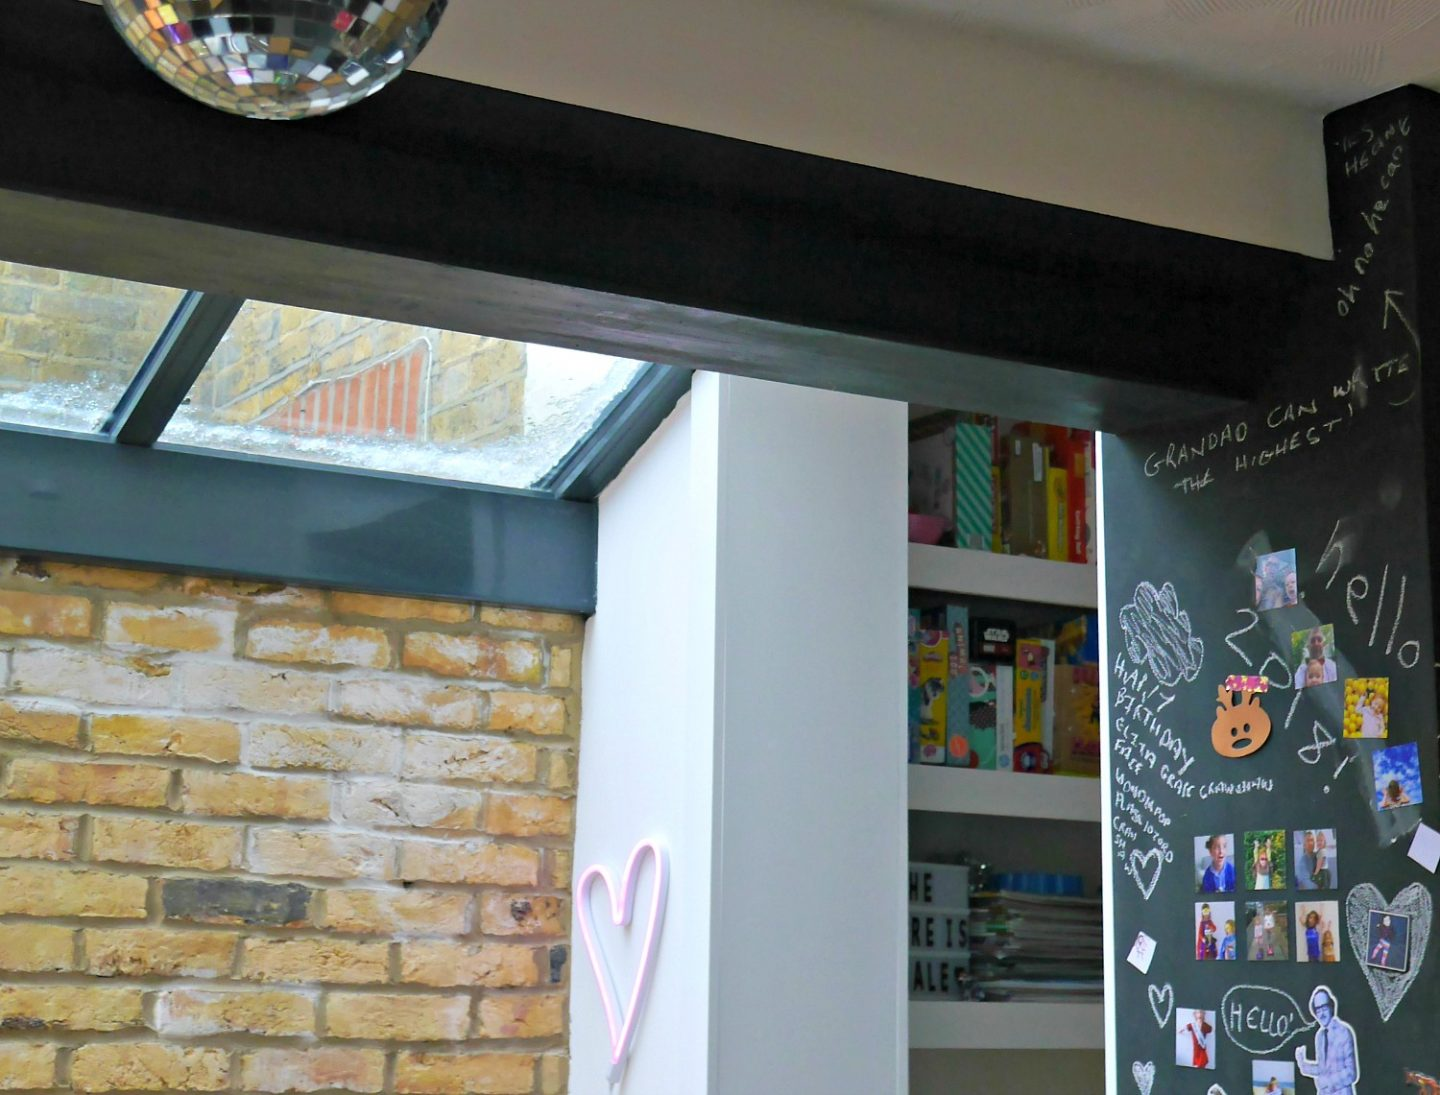 Our side return kitchen extension - exposed beam and glass roof